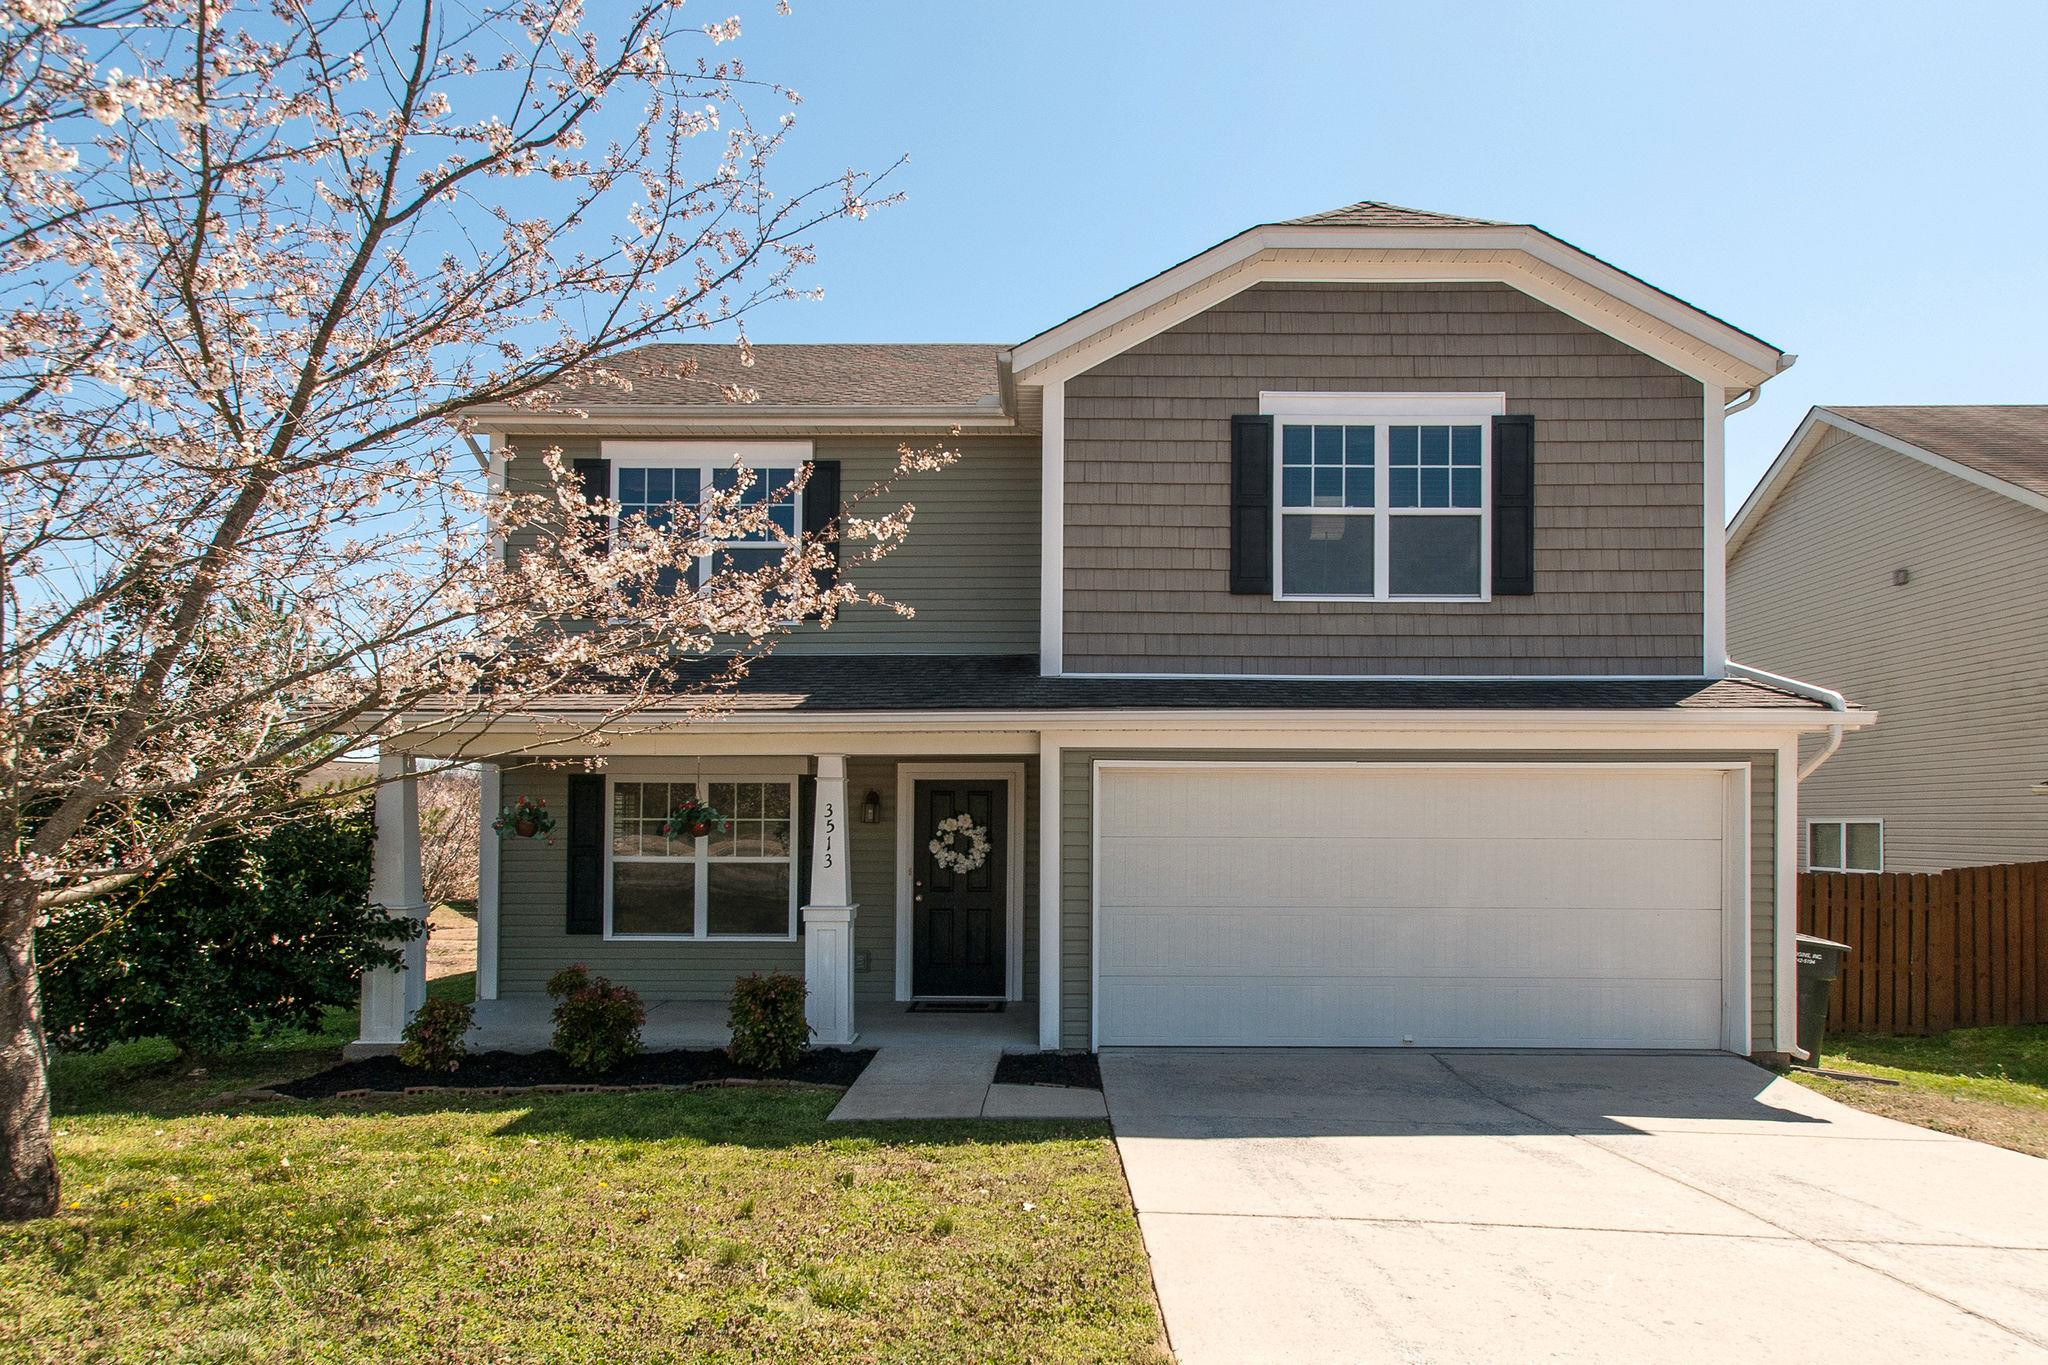 3513 Harpeth Springs Dr, Bellevue, Tennessee